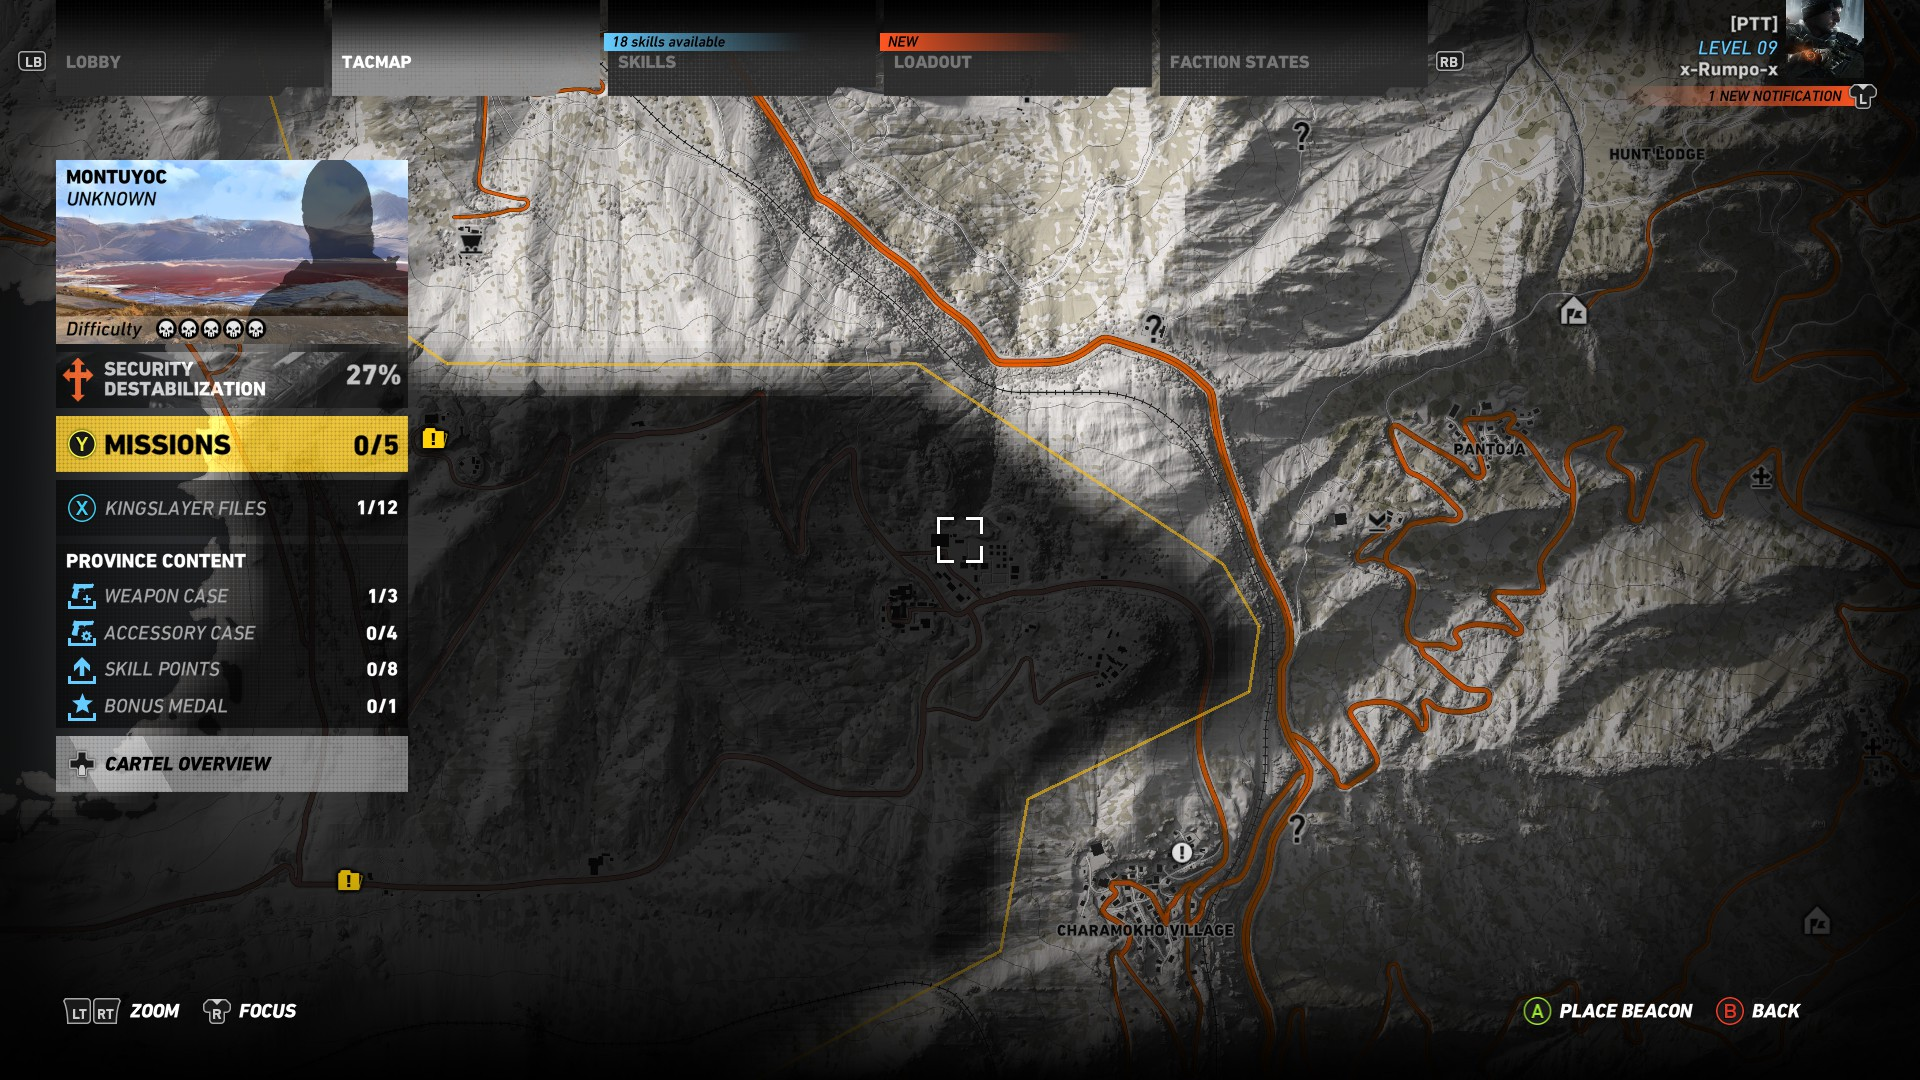 First location image - HTI location in Ghost Recon Wildlands